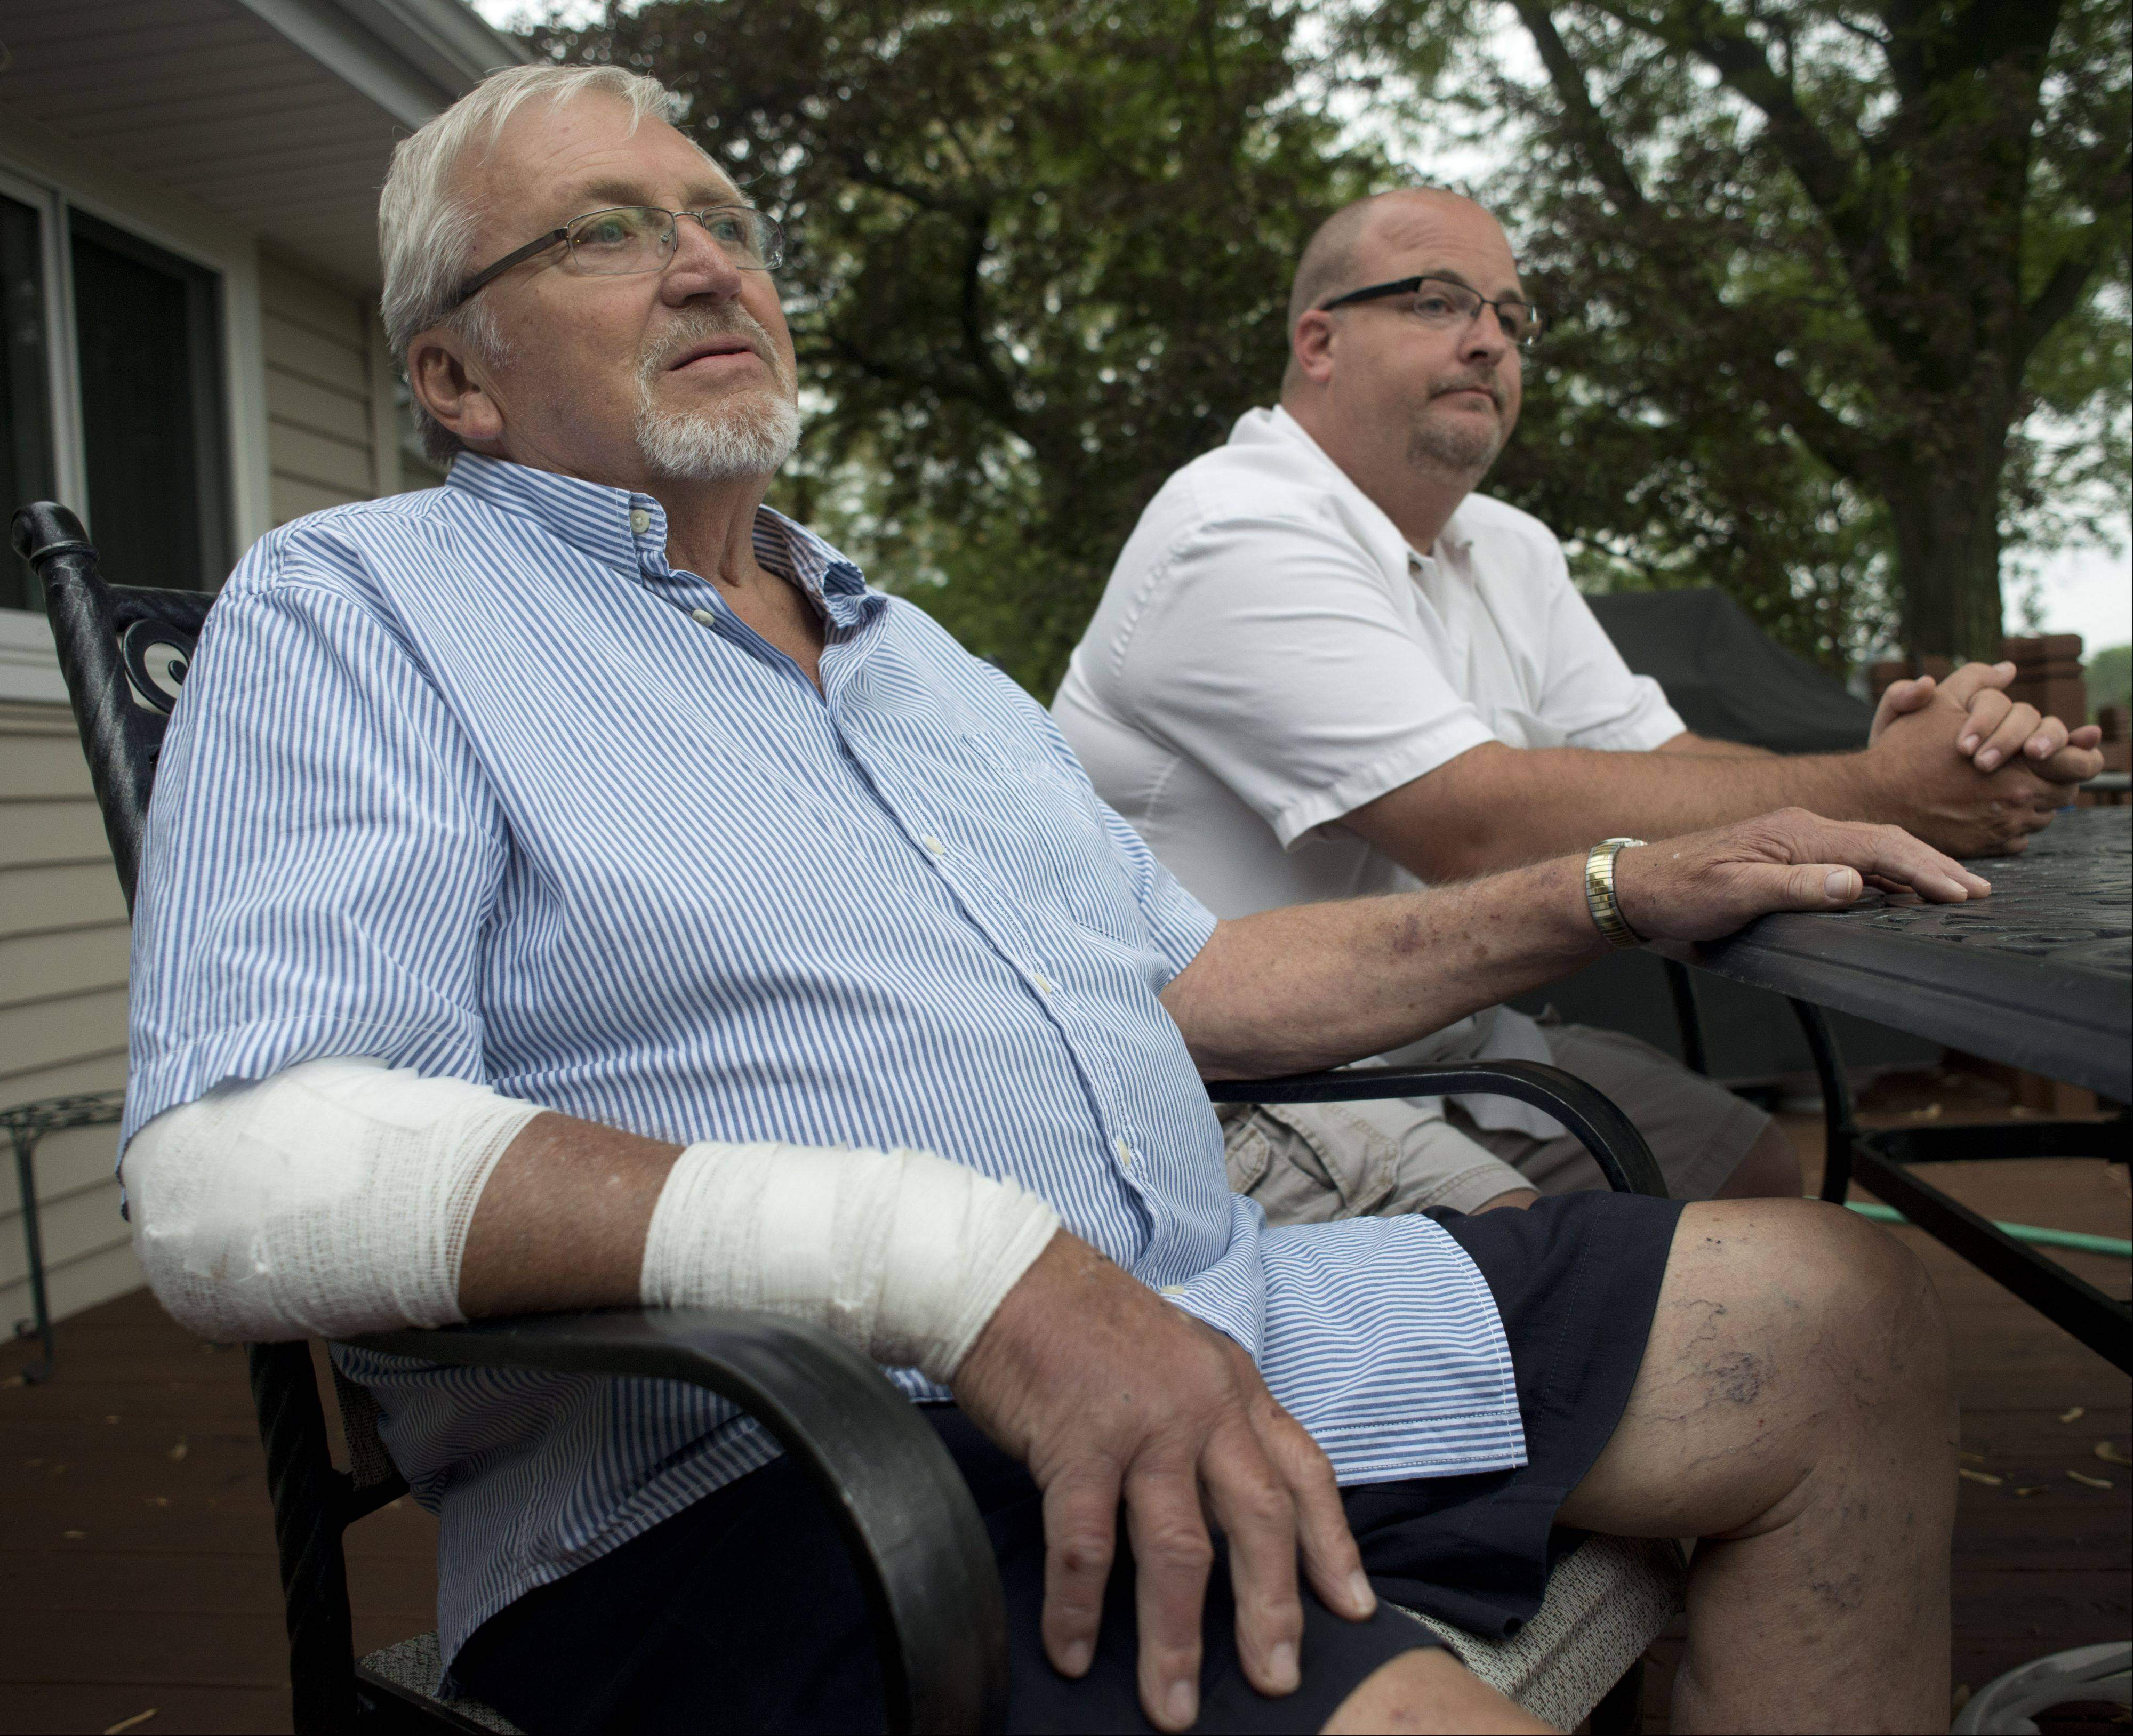 Oklahoma City tornado survivor Frank Kozak, left, talks about the experience while his son Steve sits at his side back at home in Schaumburg Tuesday. Frank's wife Char also survived the tornado and is recovering.